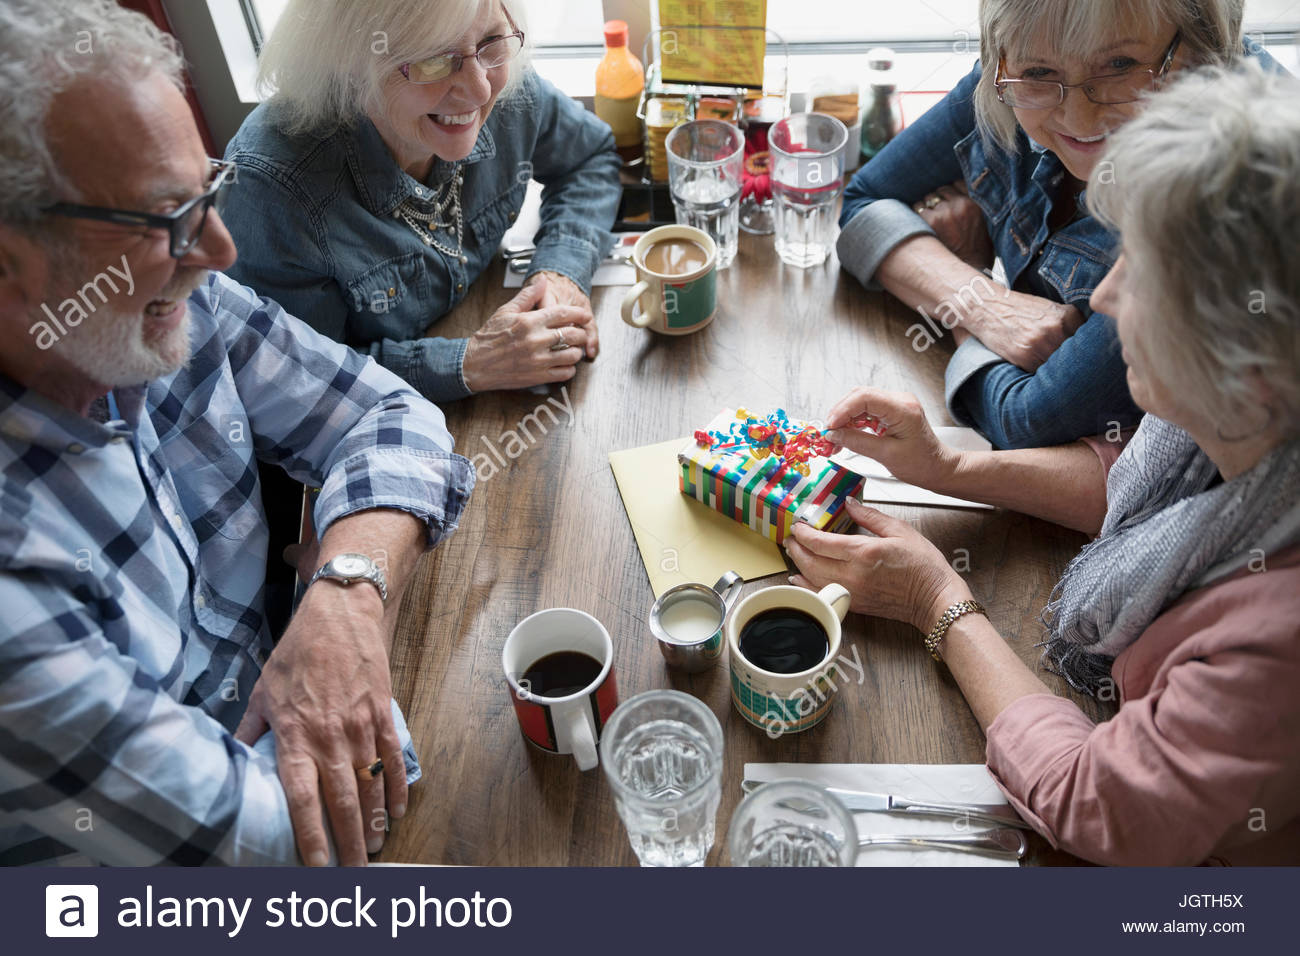 Senior friends celebrating birthday, opening gift in diner - Stock Image